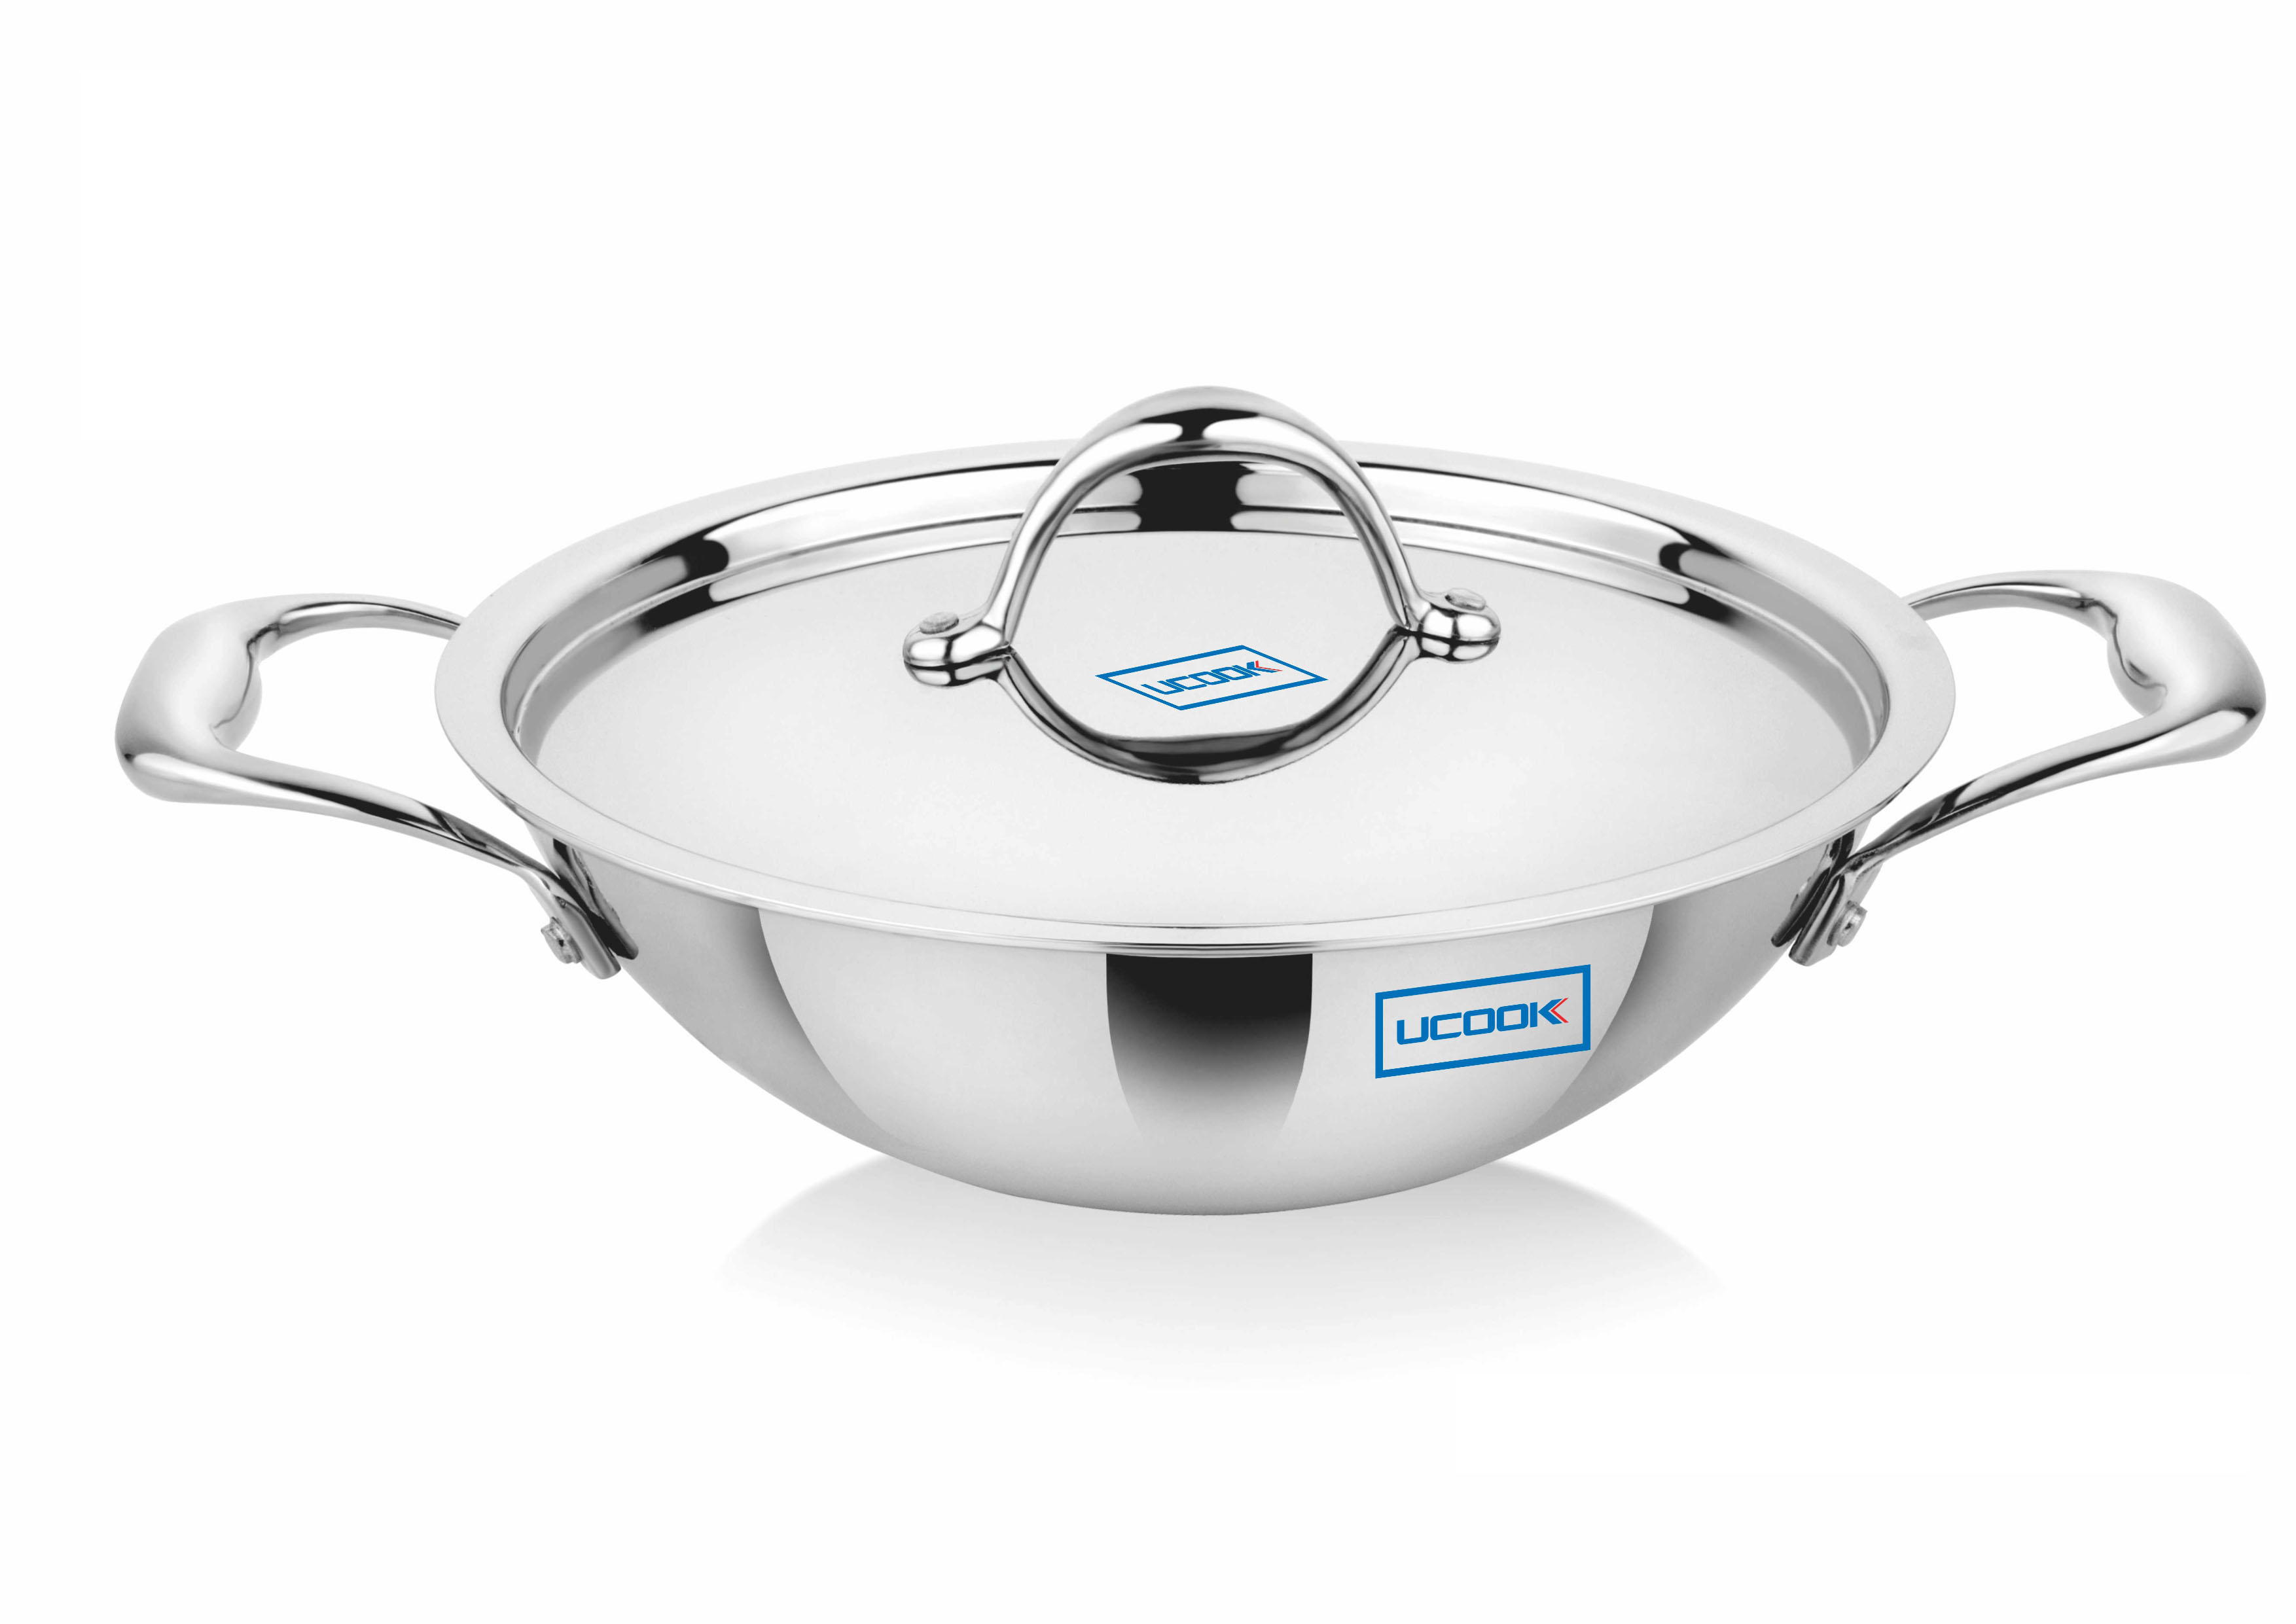 Cookware Premium- UCOOK SS Triply Kadhai Induction Compatible with Lid